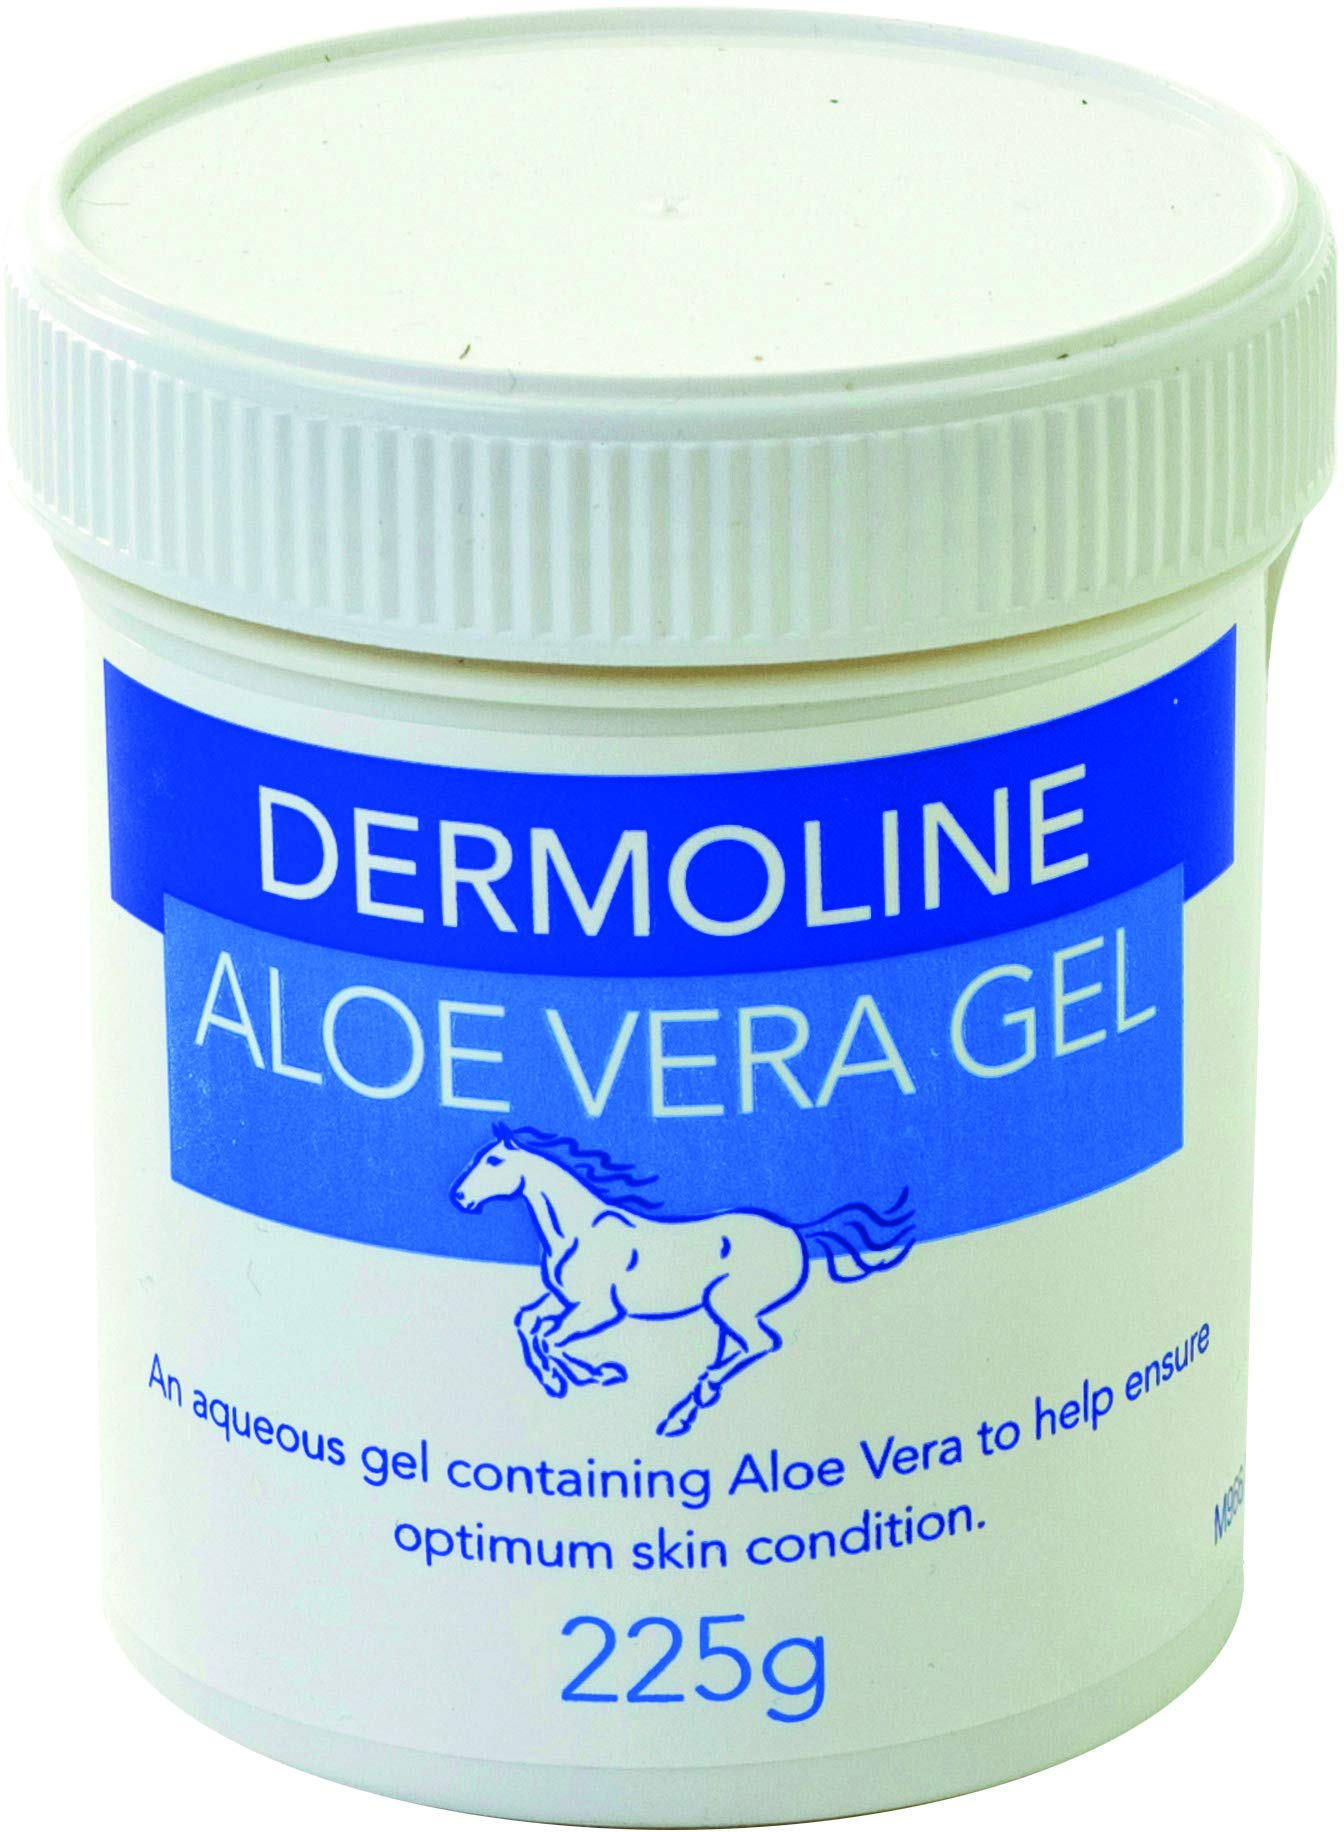 Dermoline Aloe Vera Gel Horse First Aid 225g White